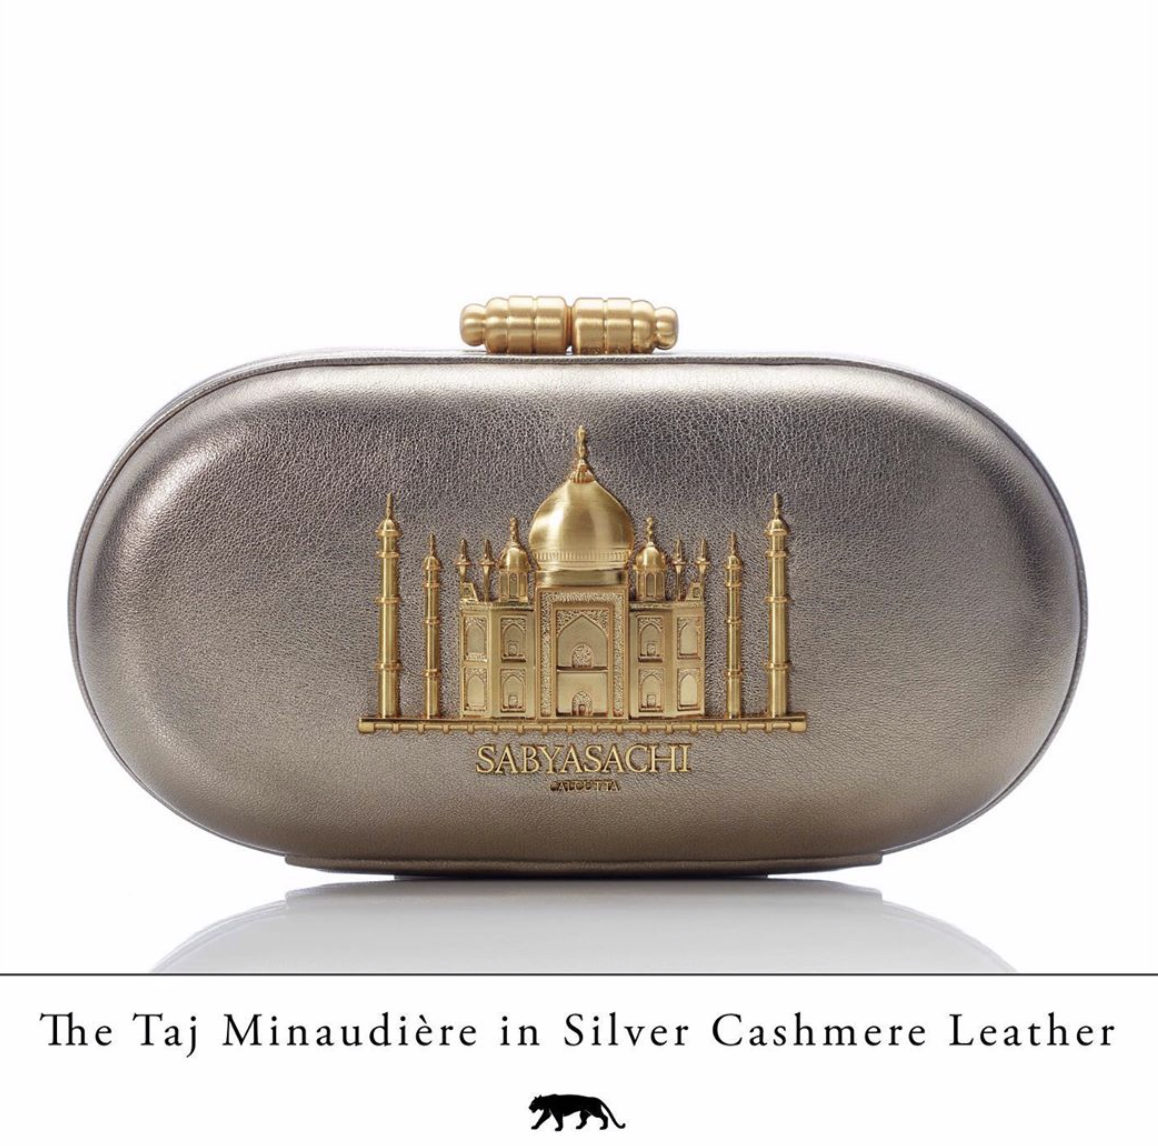 Sabyasachi Taj Minaudiere in Silver Cashmere Clutch - The Grand Trunk